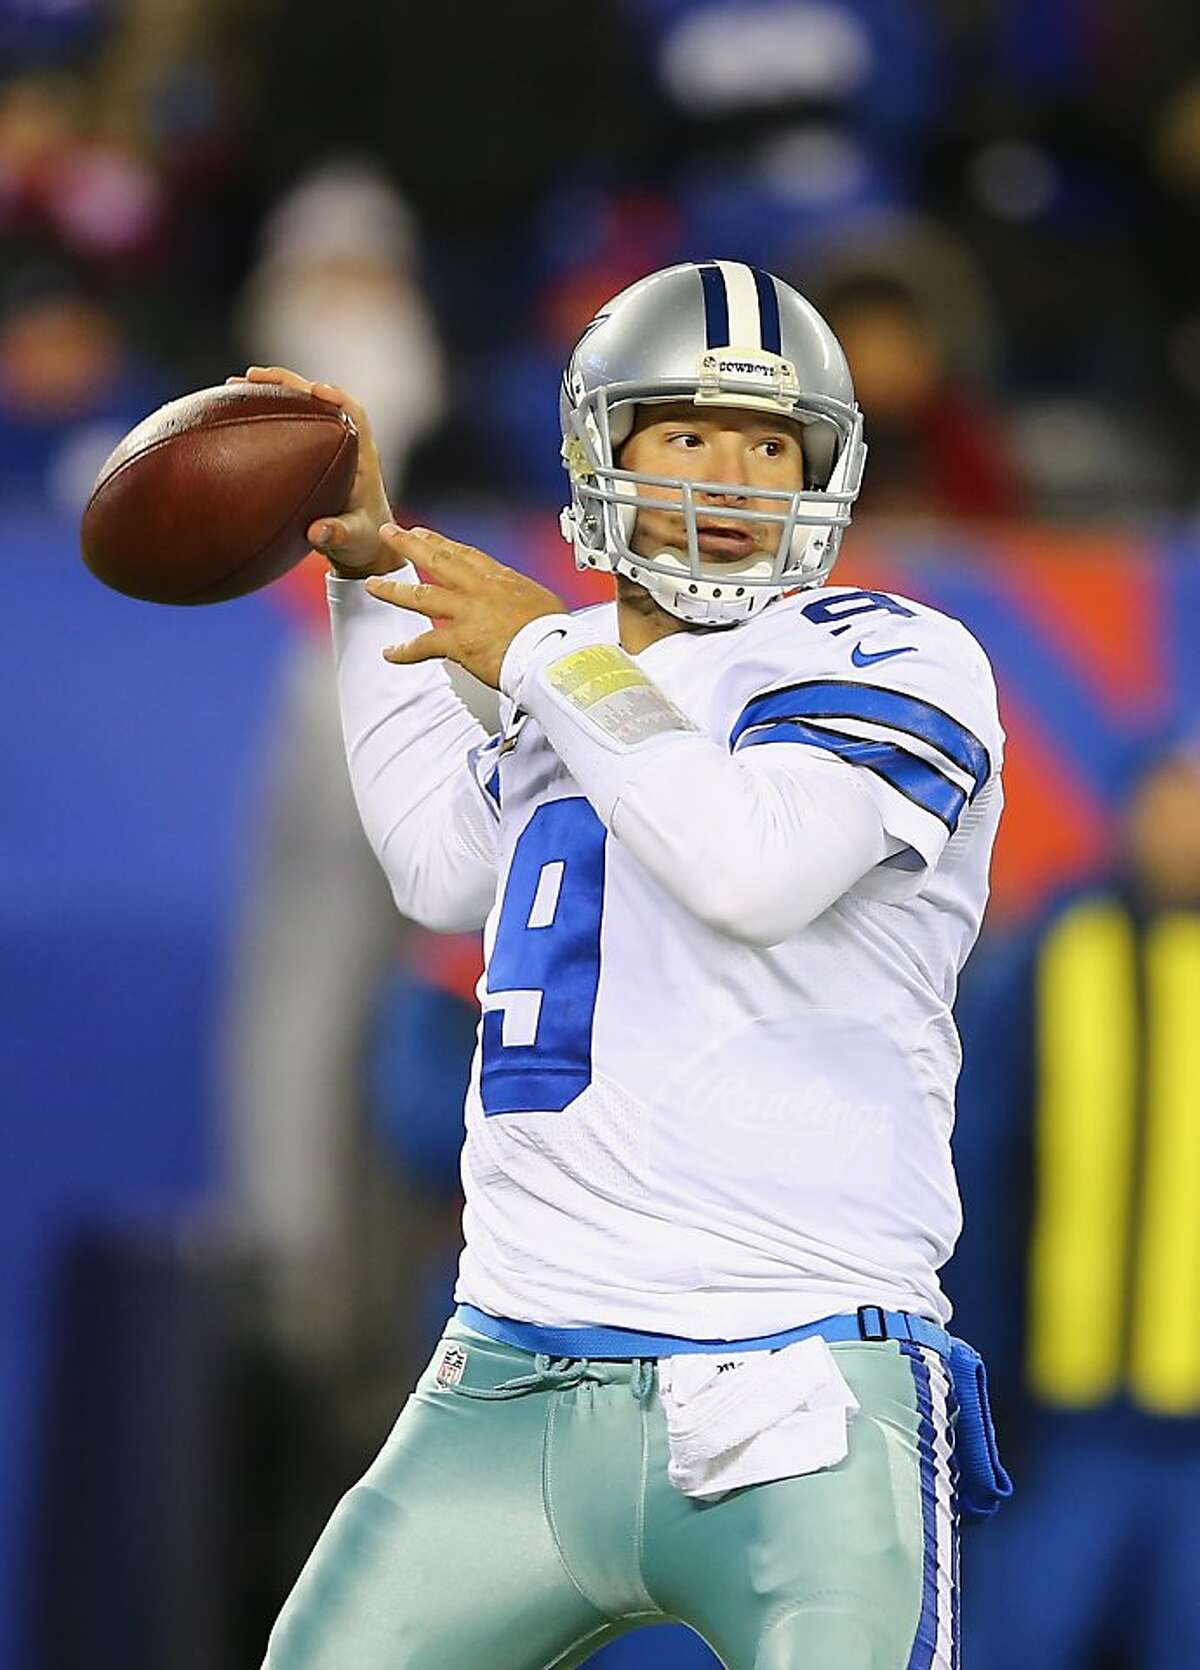 EAST RUTHERFORD, NJ - NOVEMBER 24: Tony Romo #9 of the Dallas Cowboys passes against the New York Giants during their game at MetLife Stadium on November 24, 2013 in East Rutherford, New Jersey. (Photo by Al Bello/Getty Images)